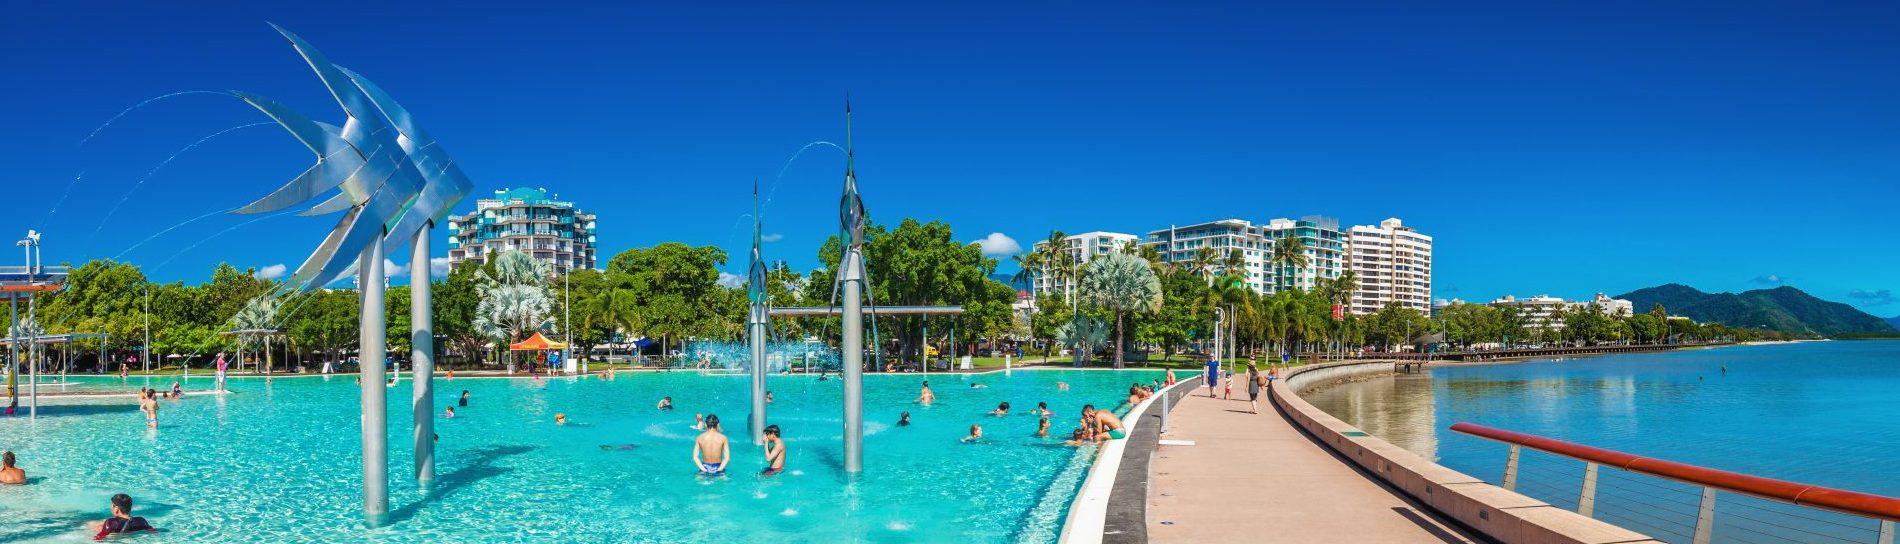 The main pool in Cairns